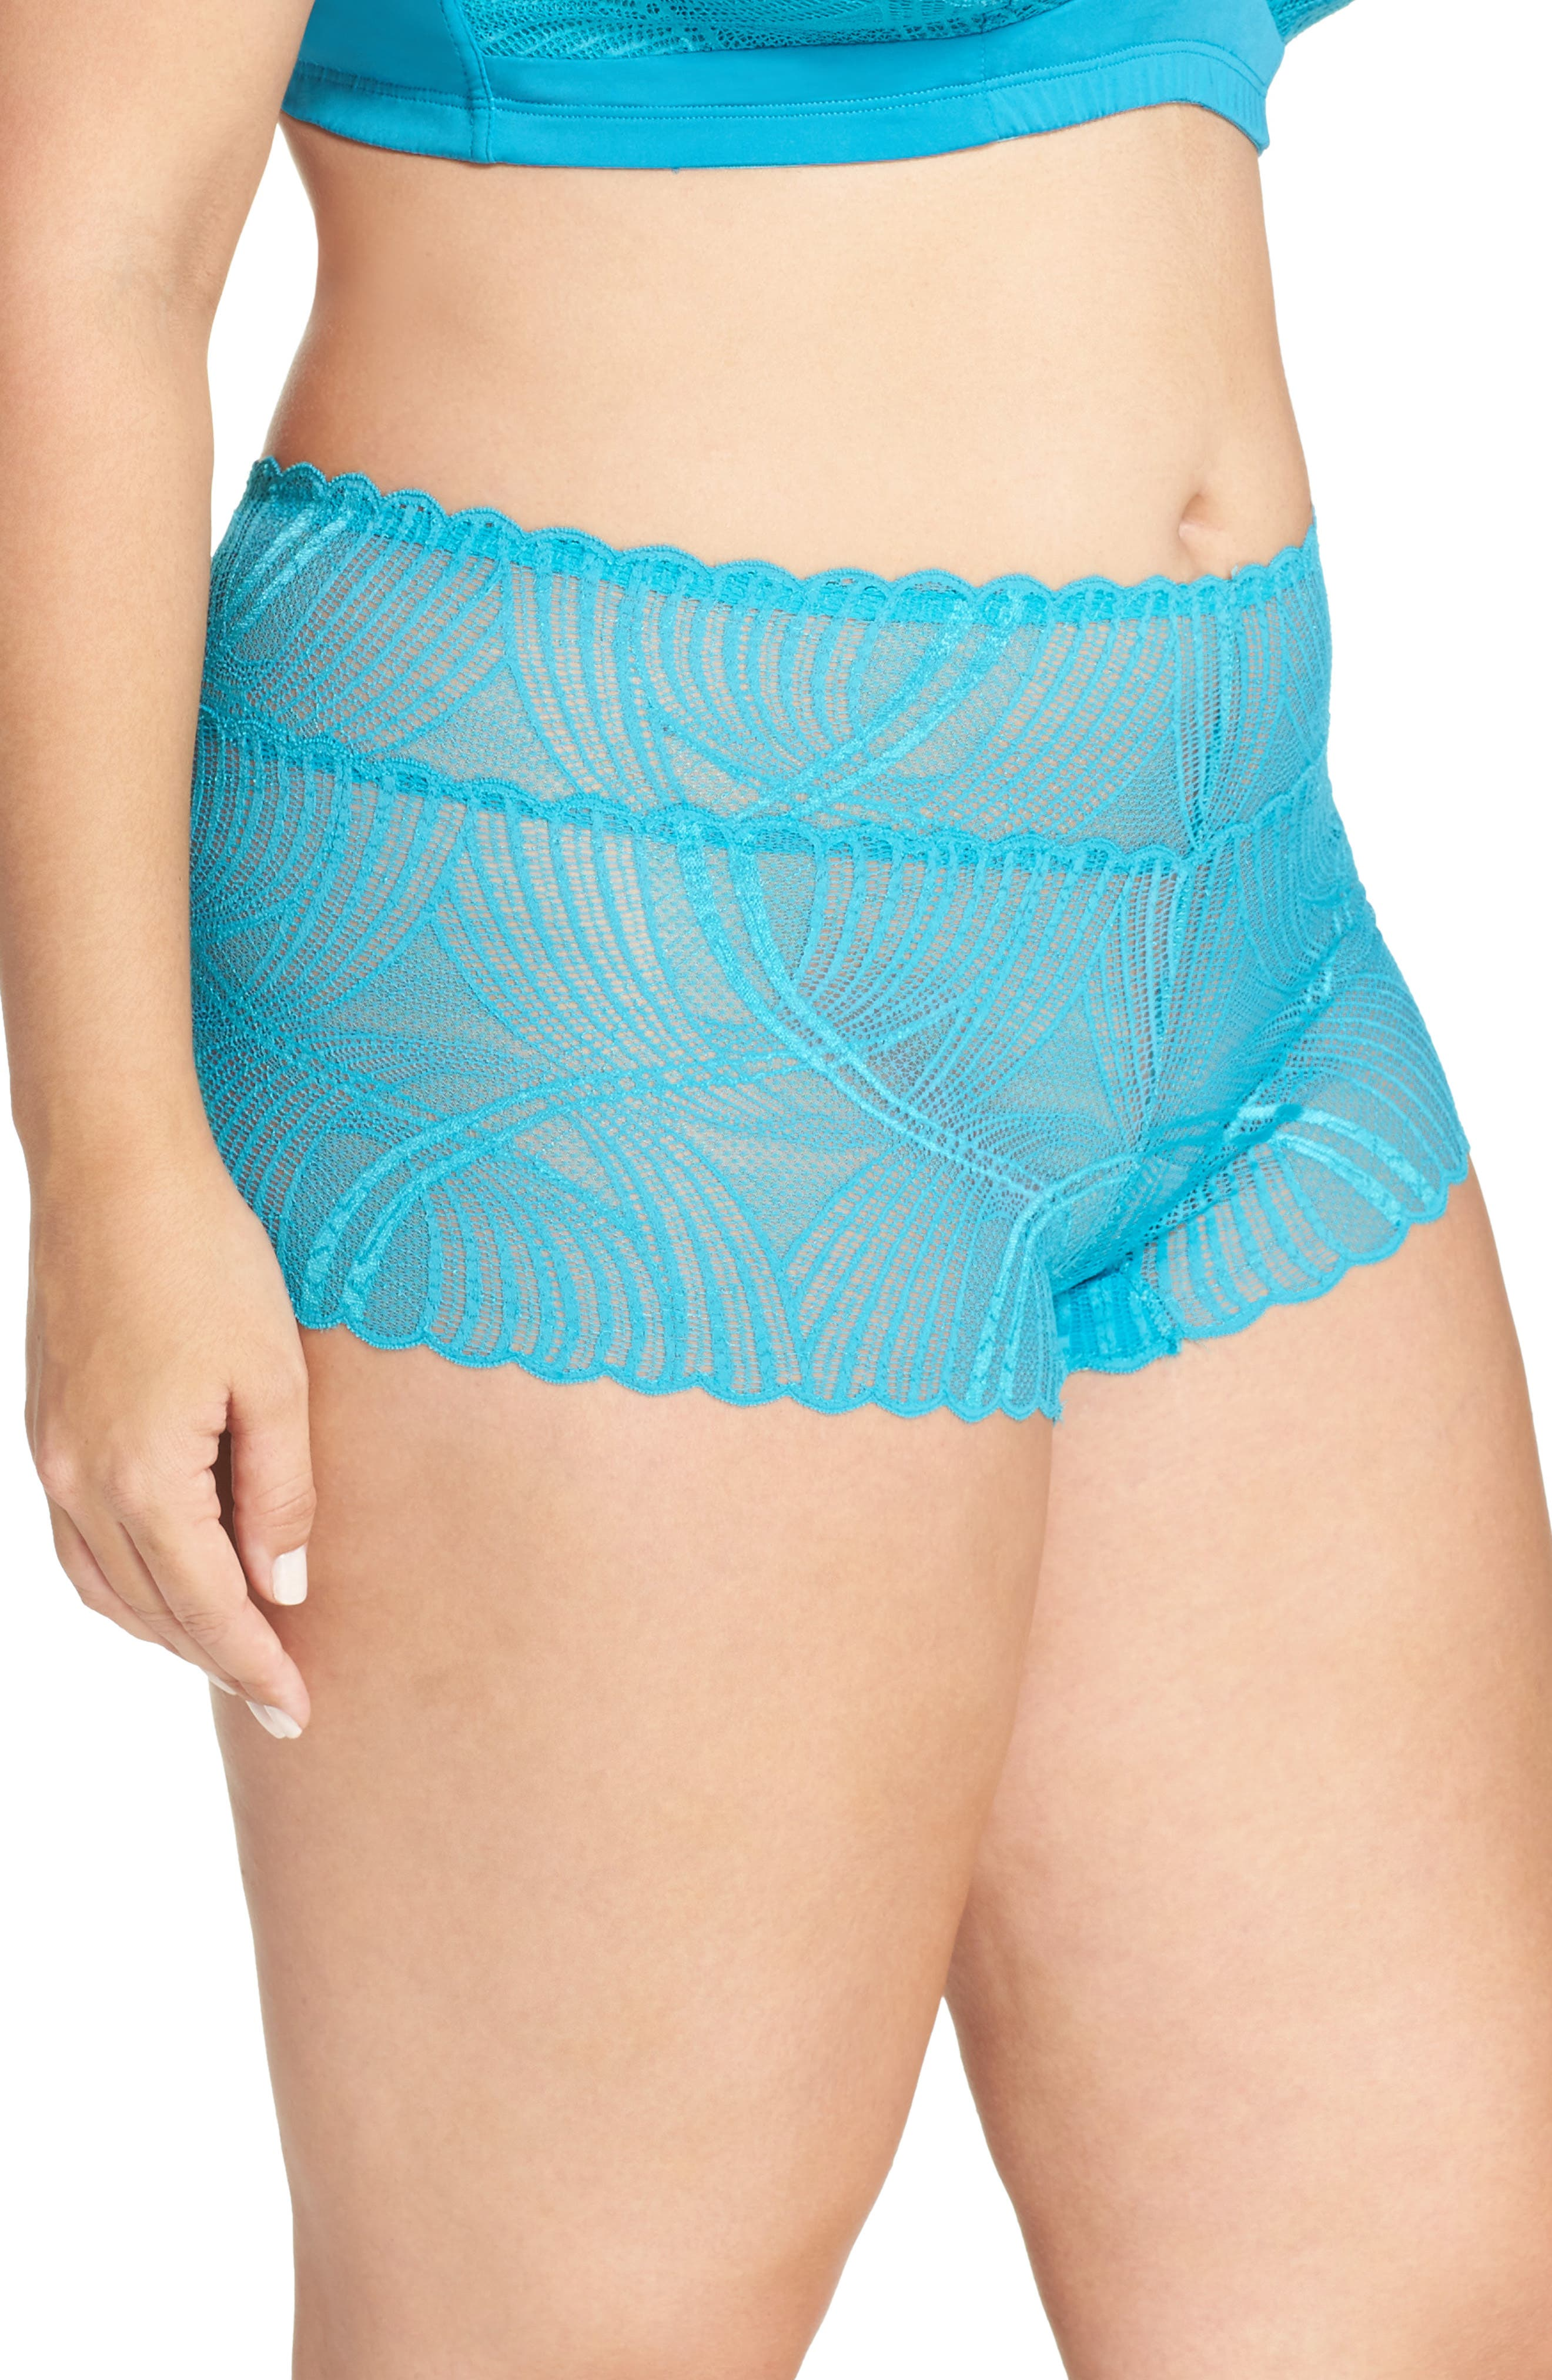 Minoa Naughtie Open Gusset Boyshorts,                             Alternate thumbnail 14, color,